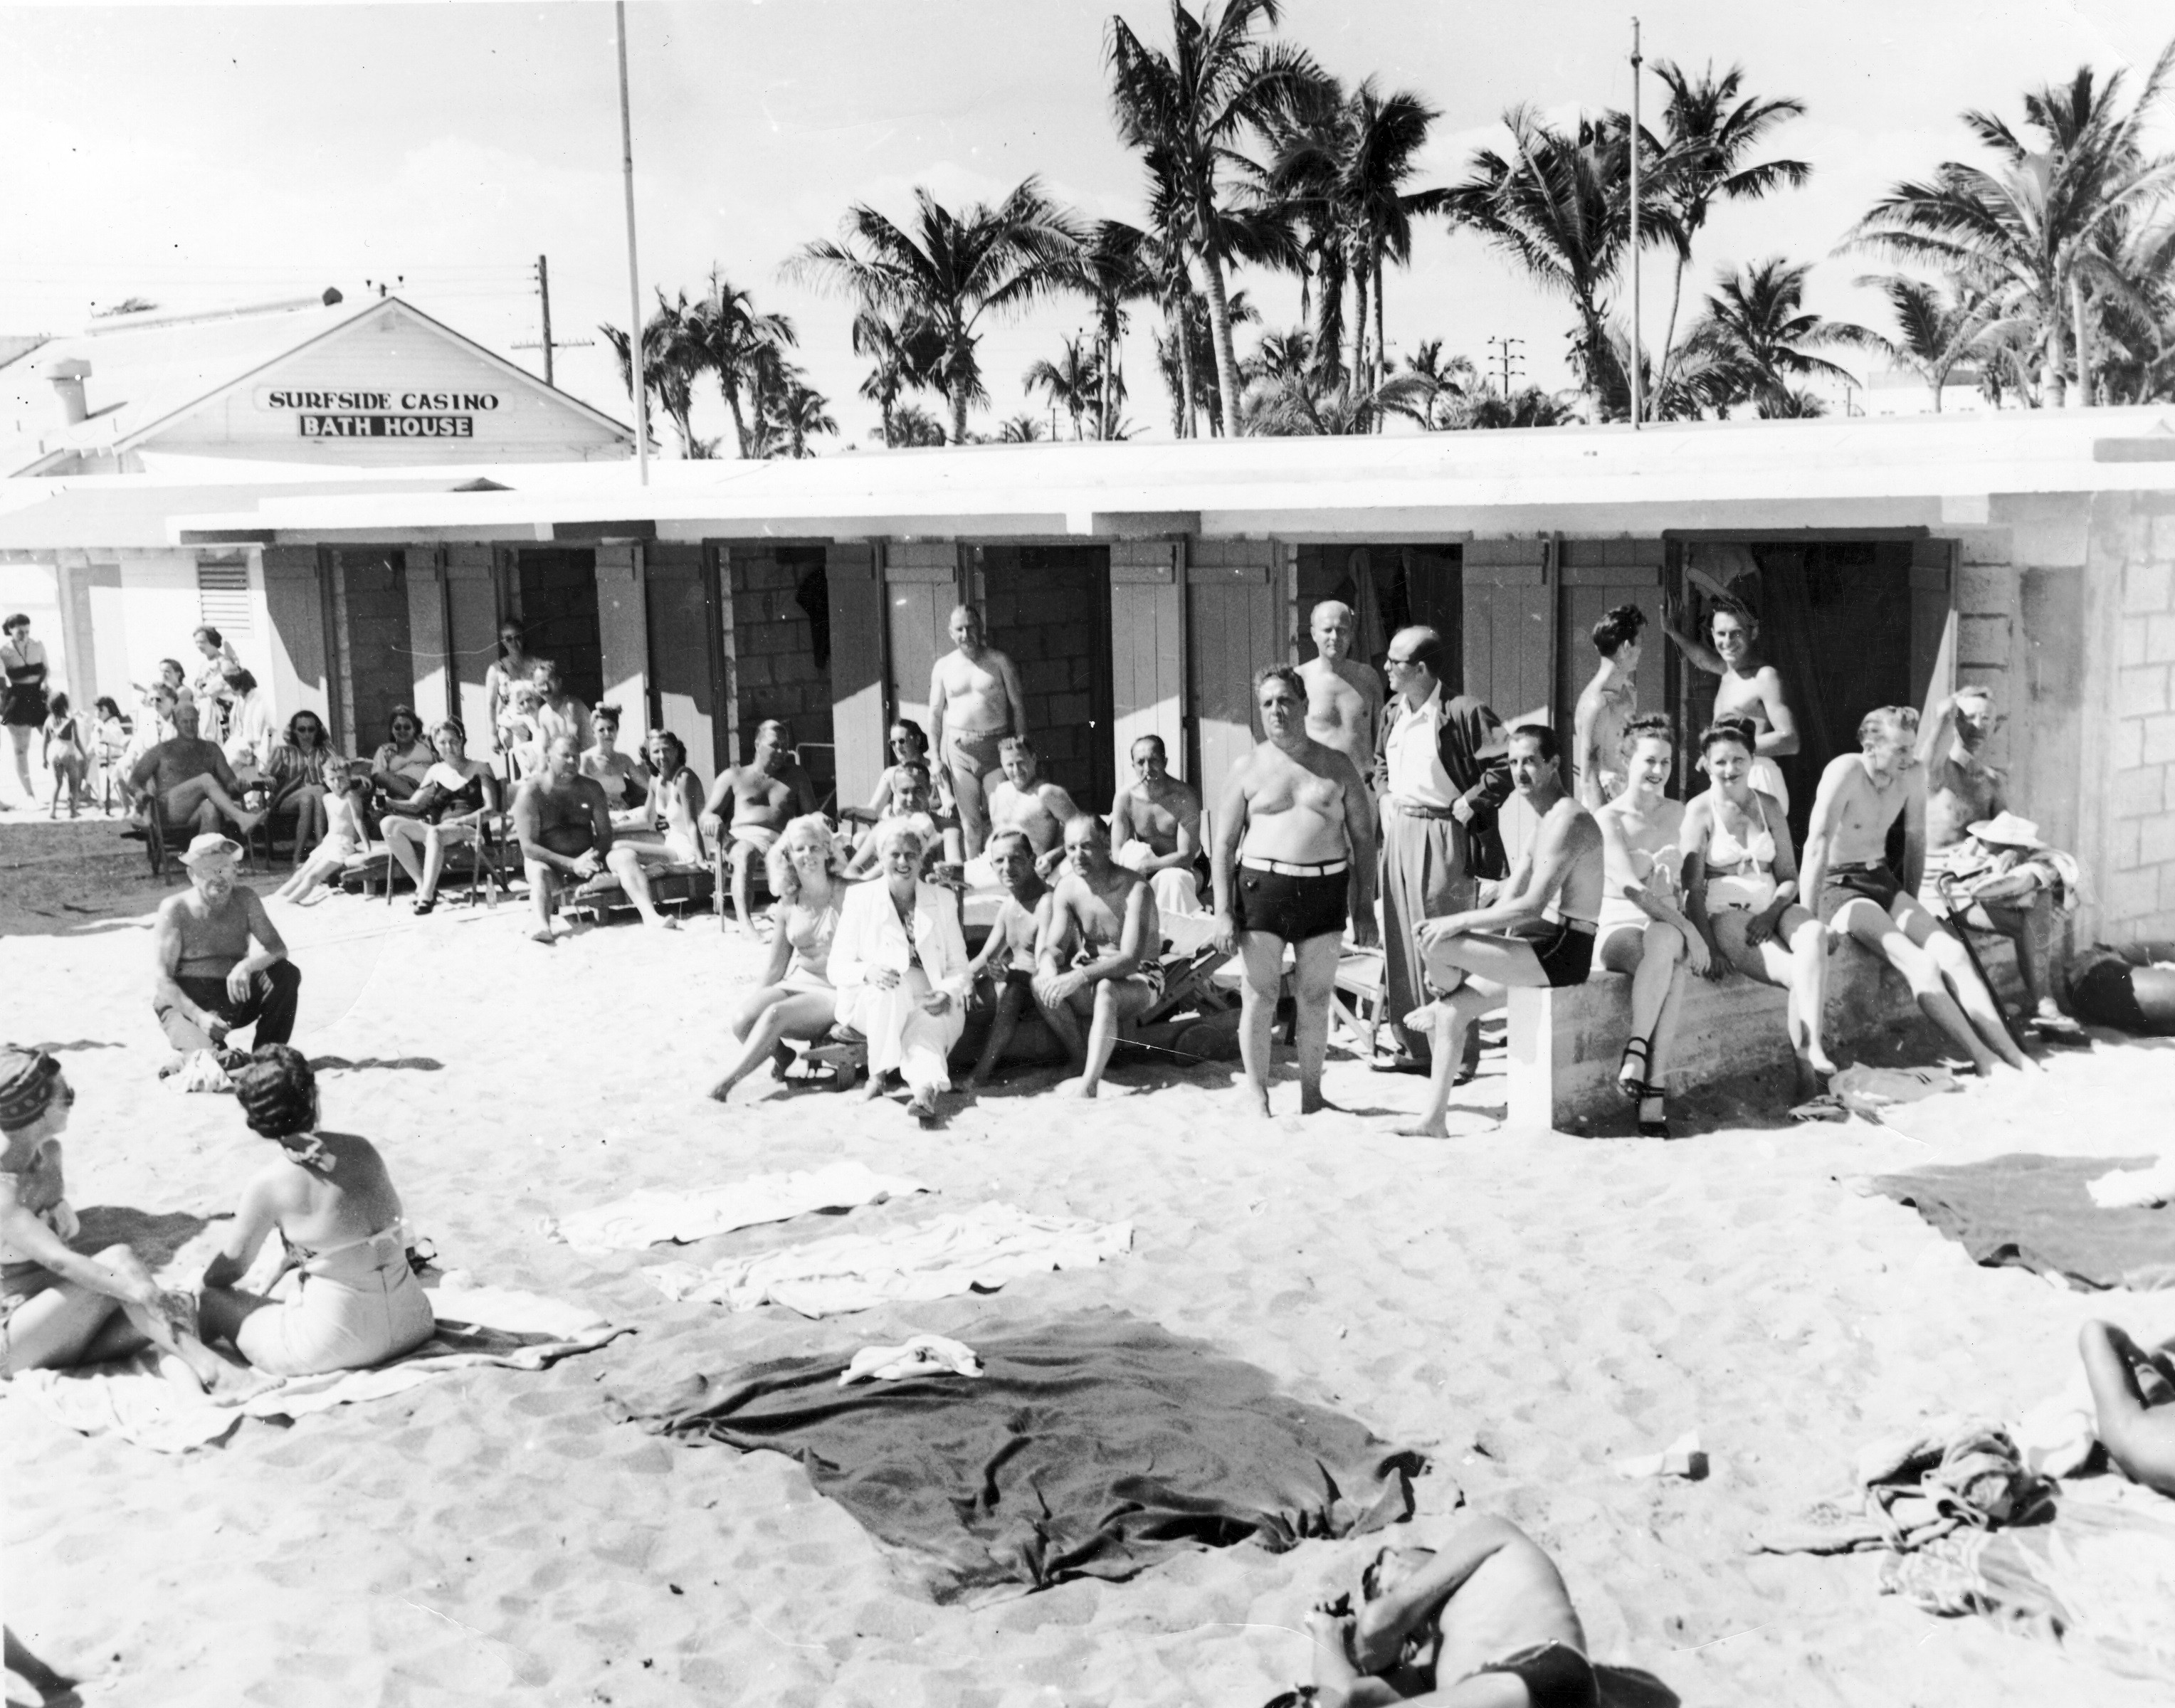 Beachgoers sitting and standing outside the Surfside Casino Bath House, circa 1950s. South Florida Photograph Collection, HistoryMiami Museum, 2009-486-1.